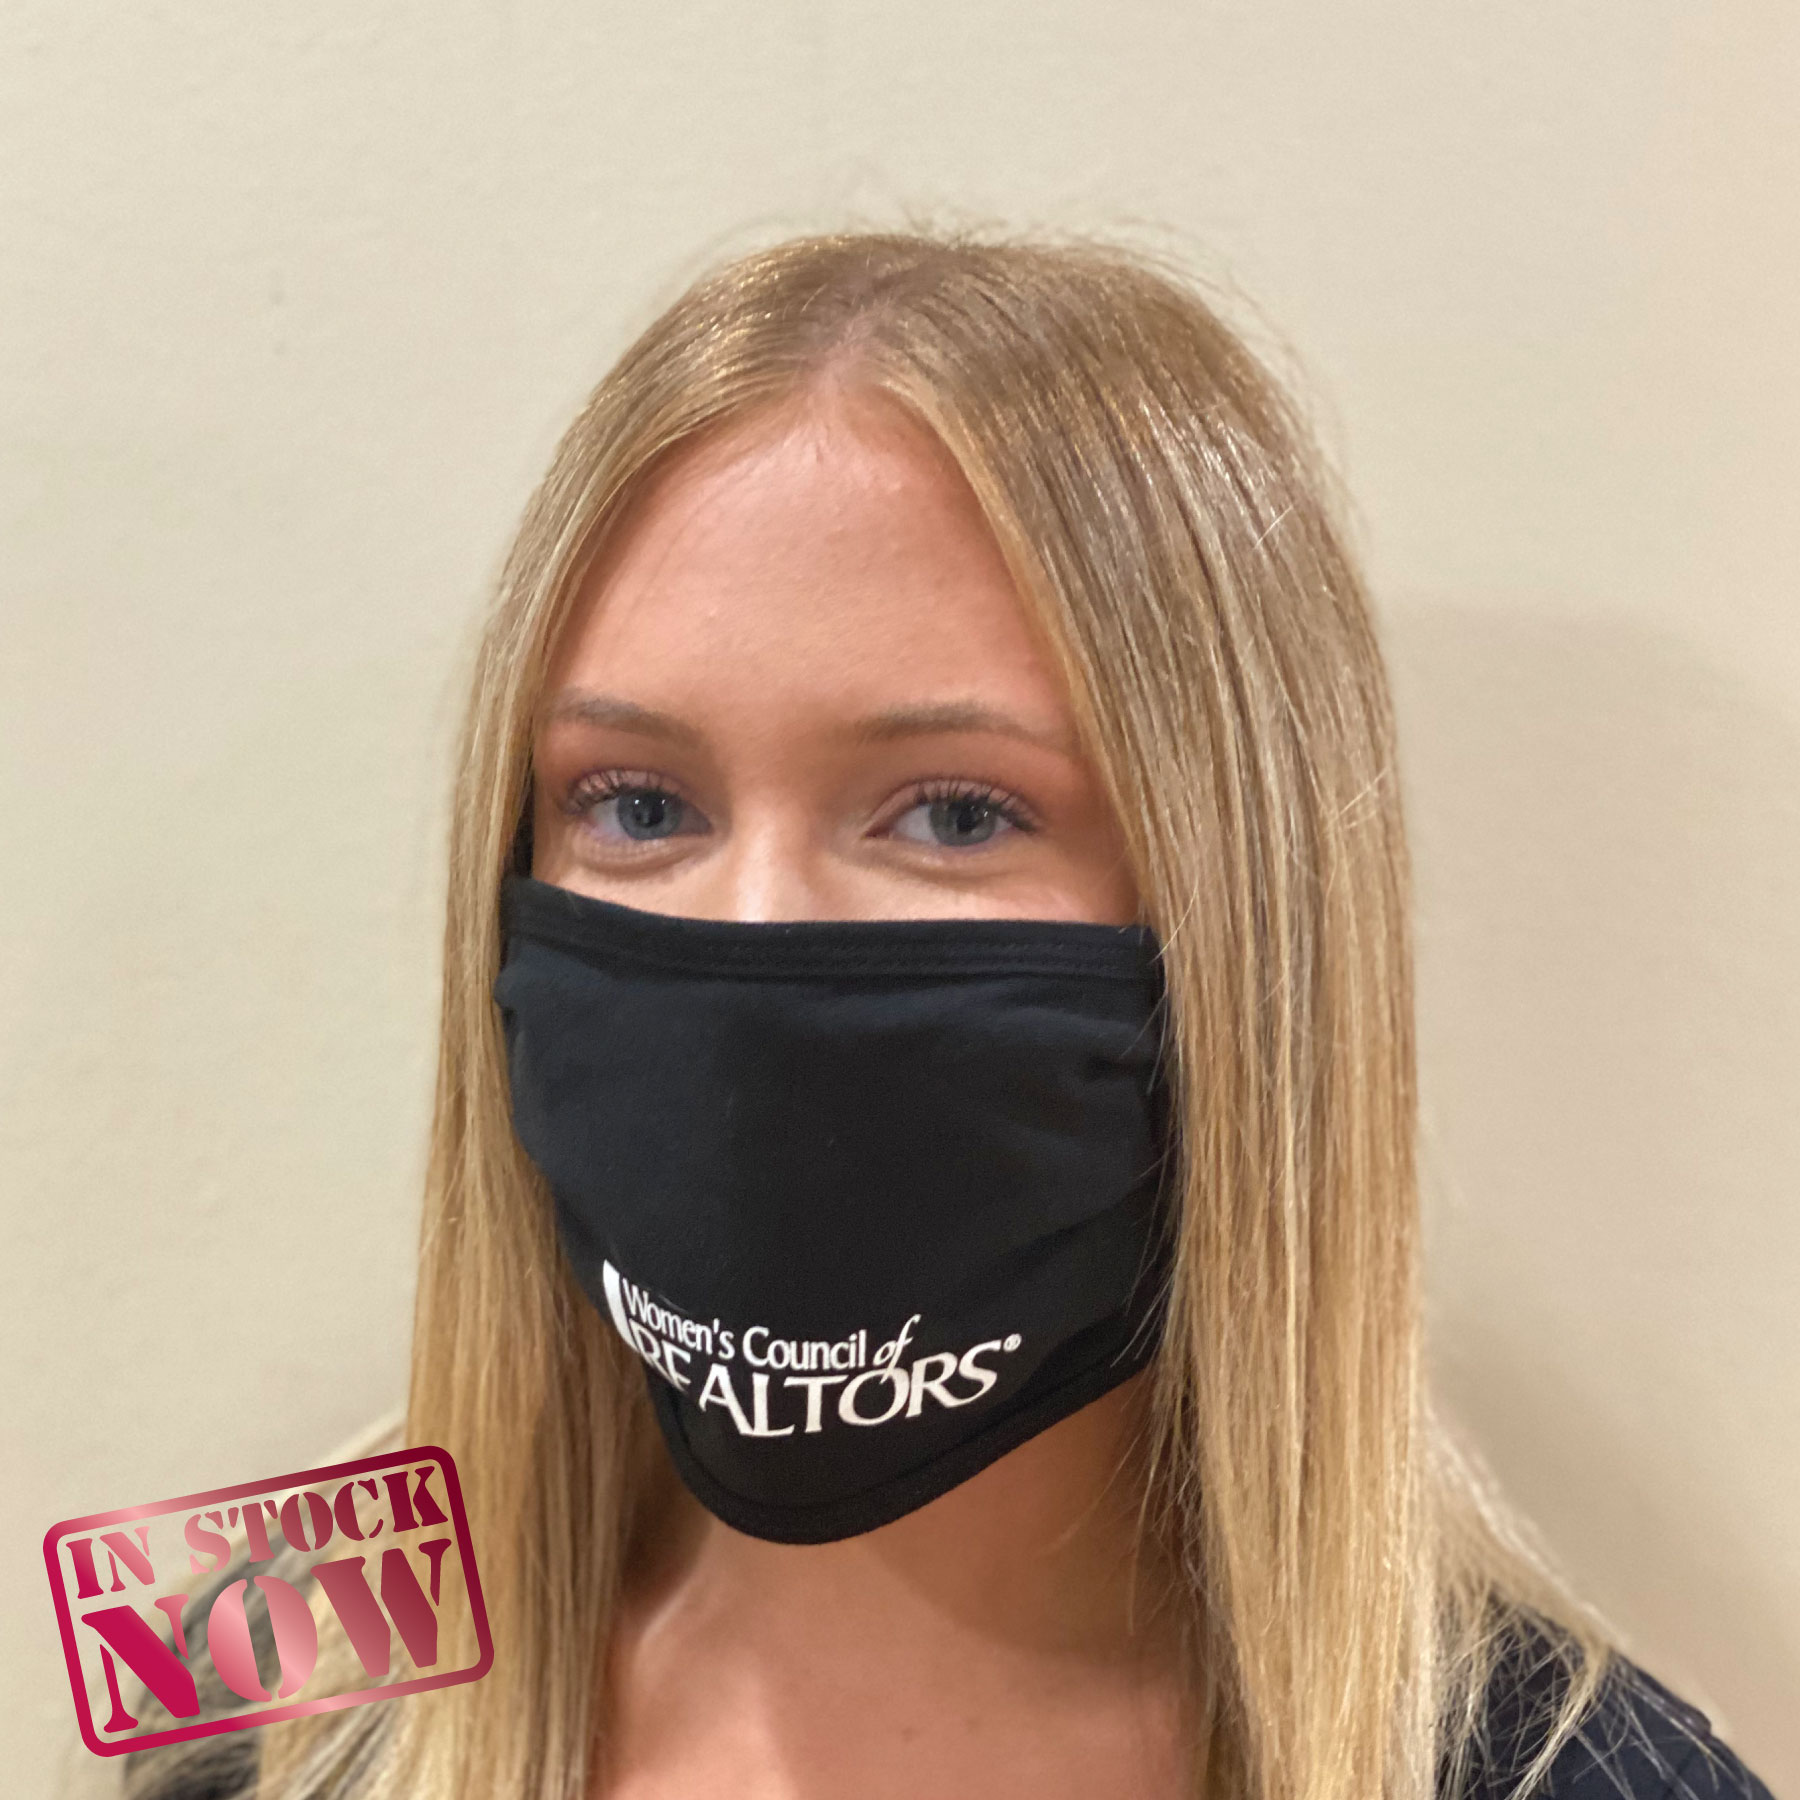 In Stock: 2 Layer Womens Council Logo Mask Faces,Masks,Shields,COVID,COVID-19,SARS,Virus,Viruses,Coughs,Safety,Rhinestones,Gems,Dance